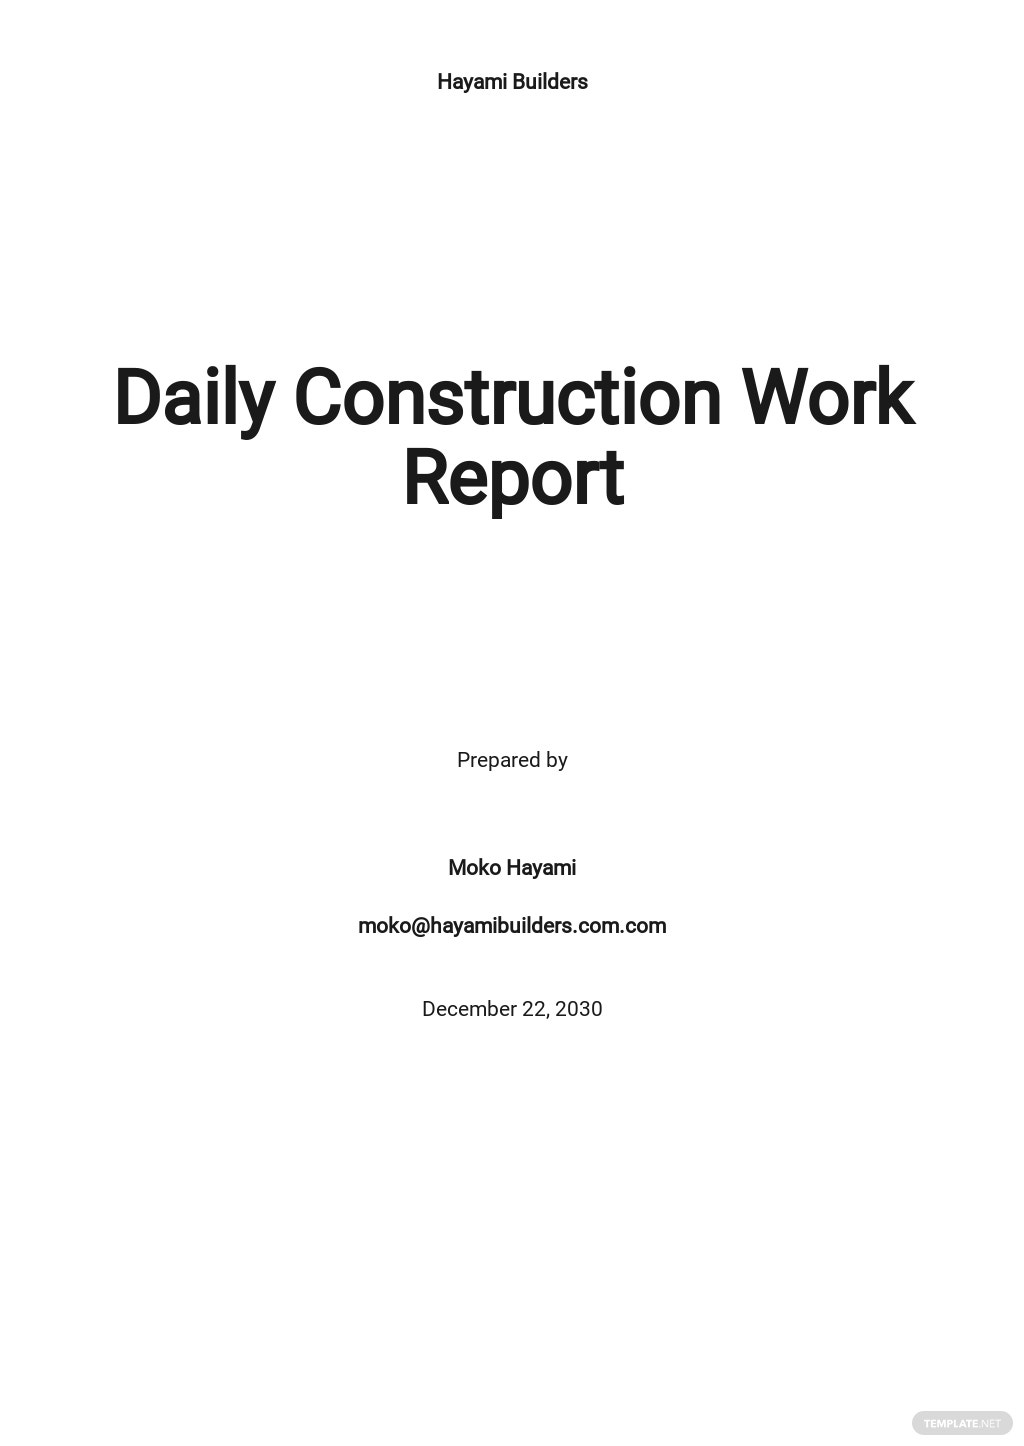 Daily Construction Work Report Template